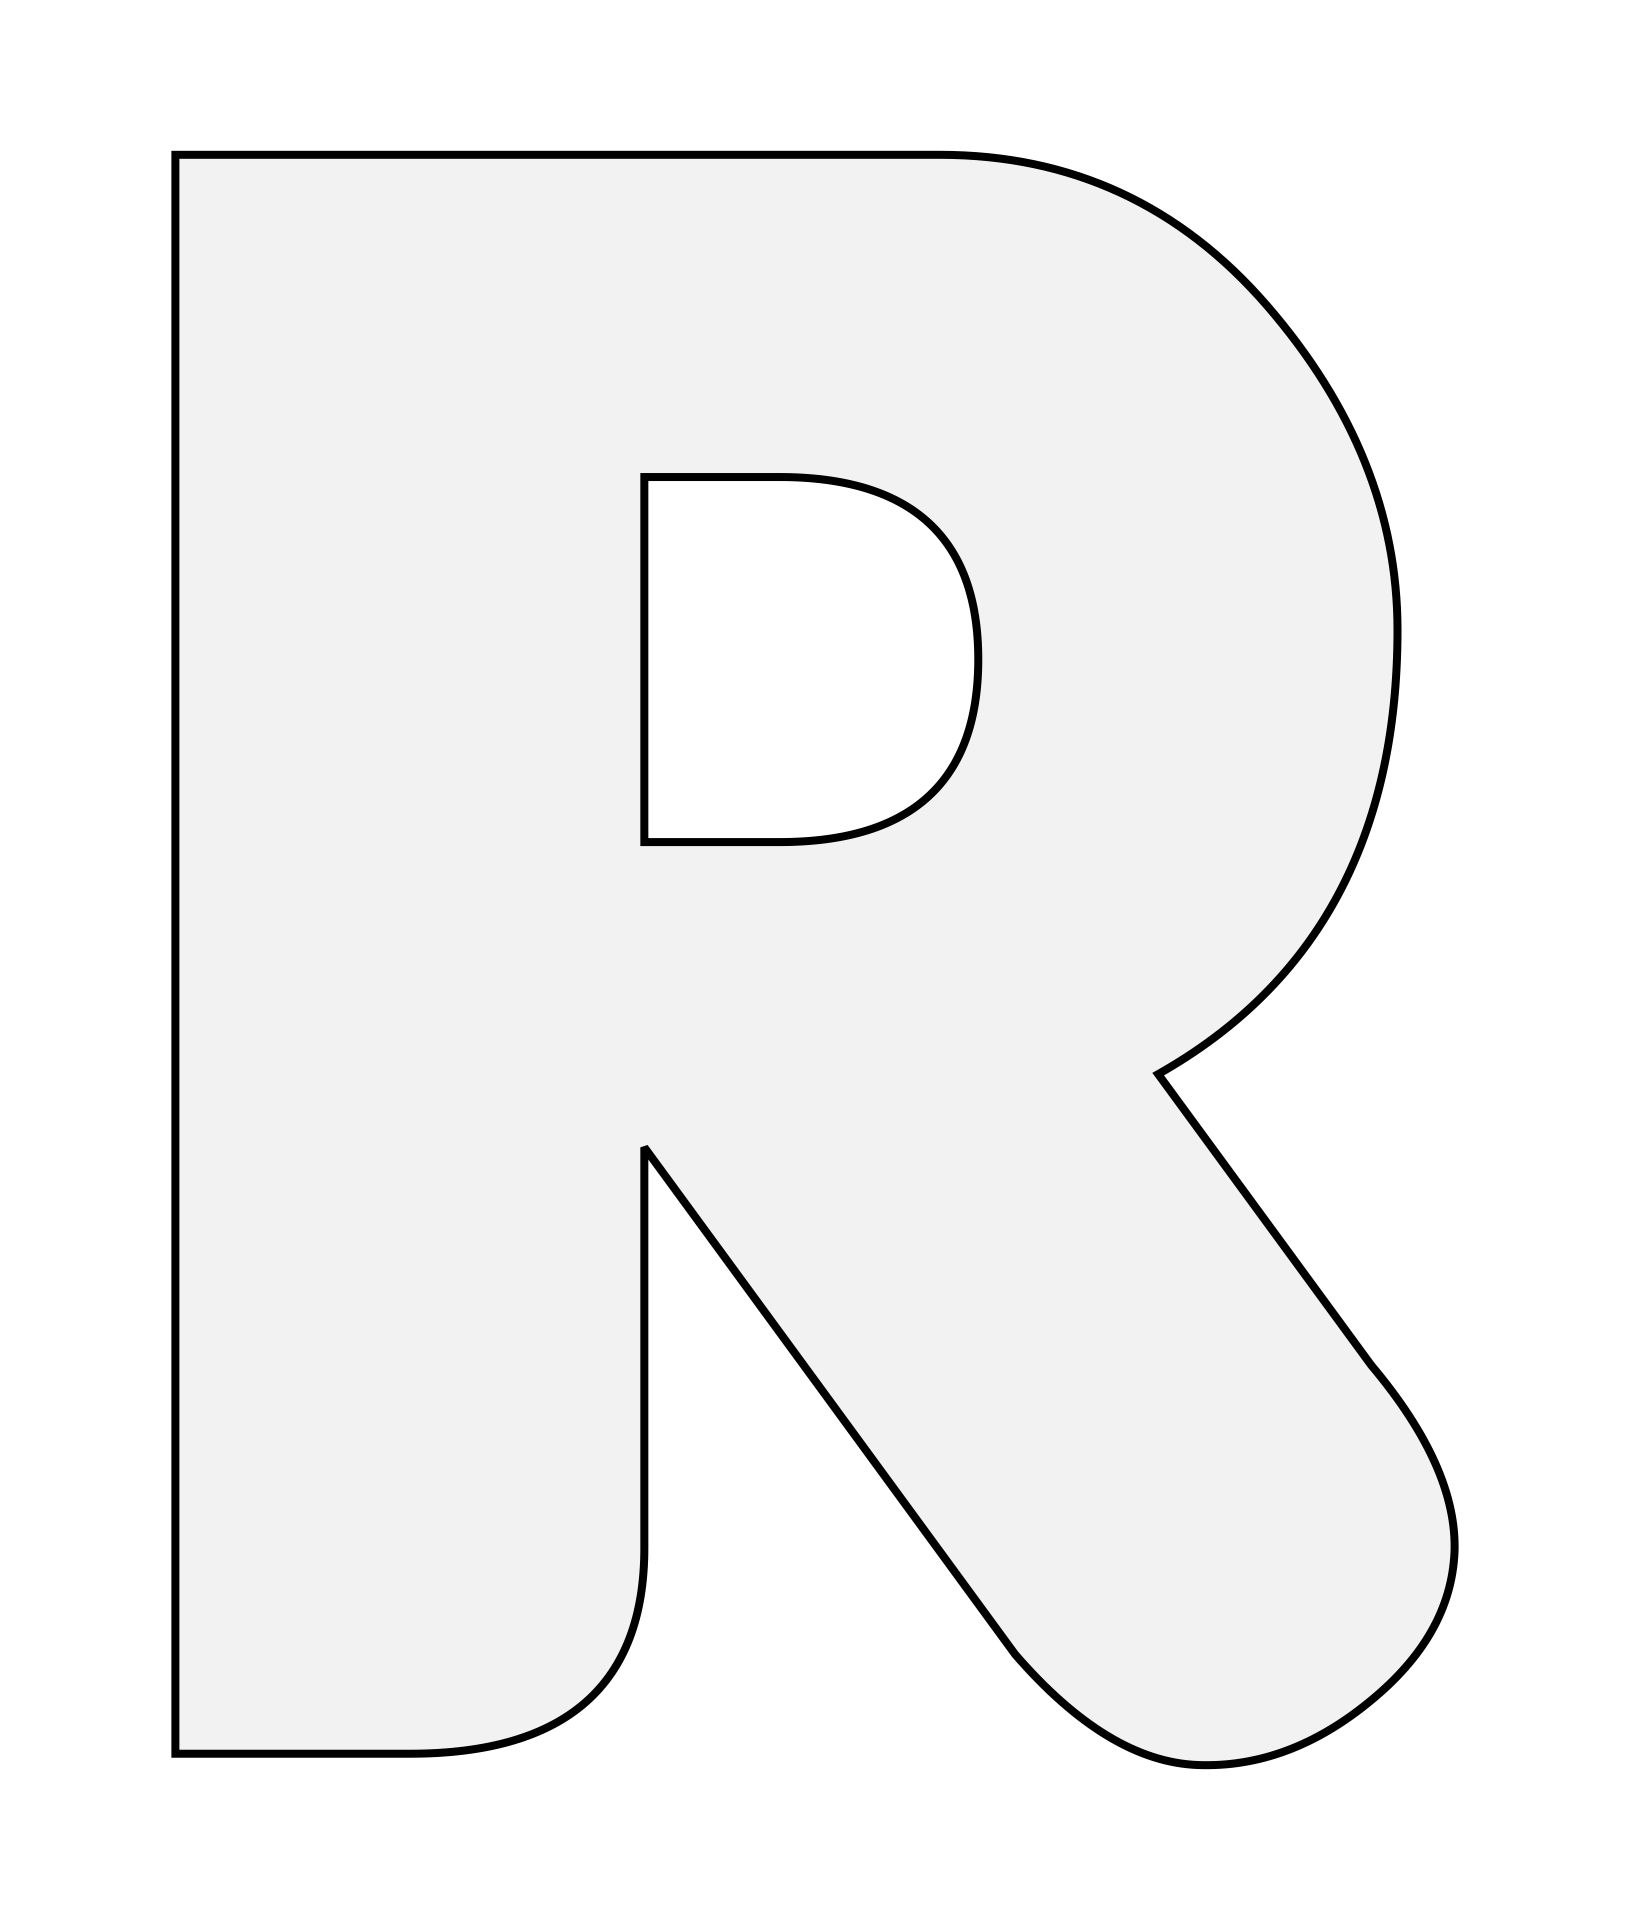 Printable Alphabet Templates Letter R